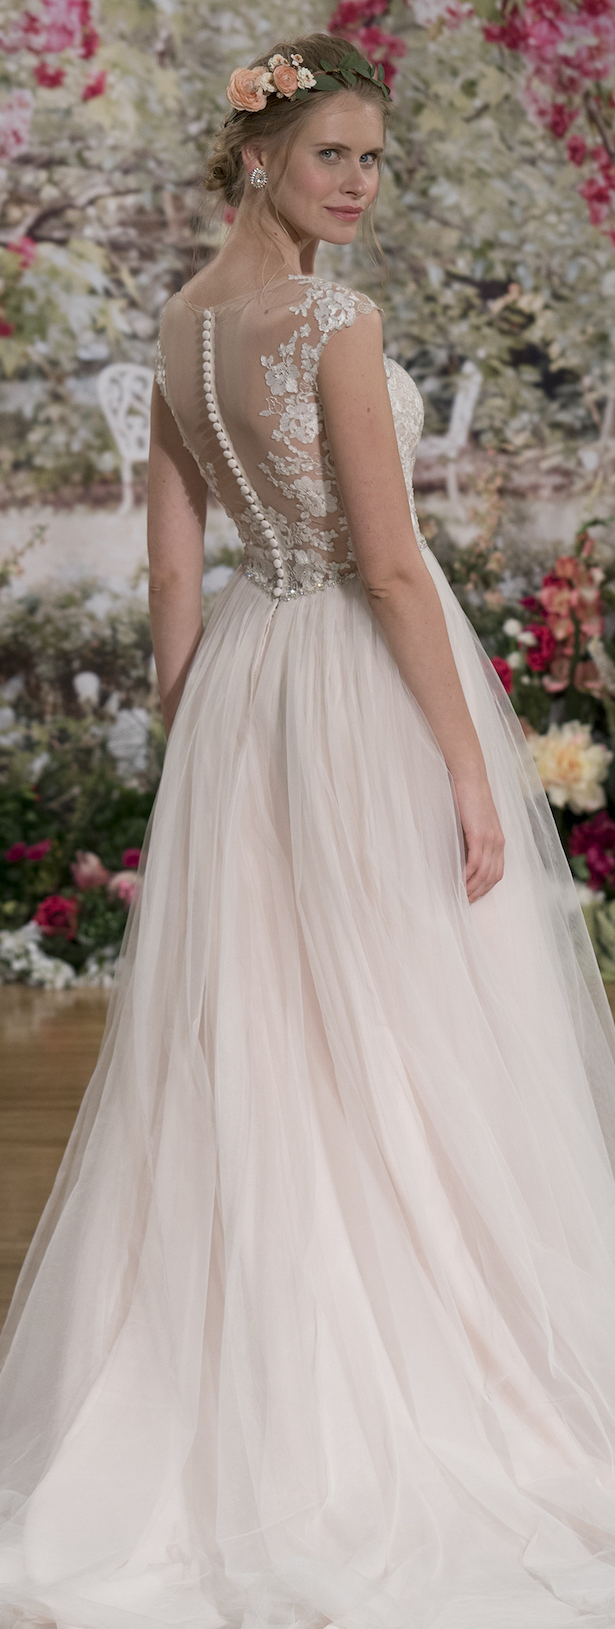 Maggie Sottero Wedding Dress Prices 94 Simple  Wedding Dress by